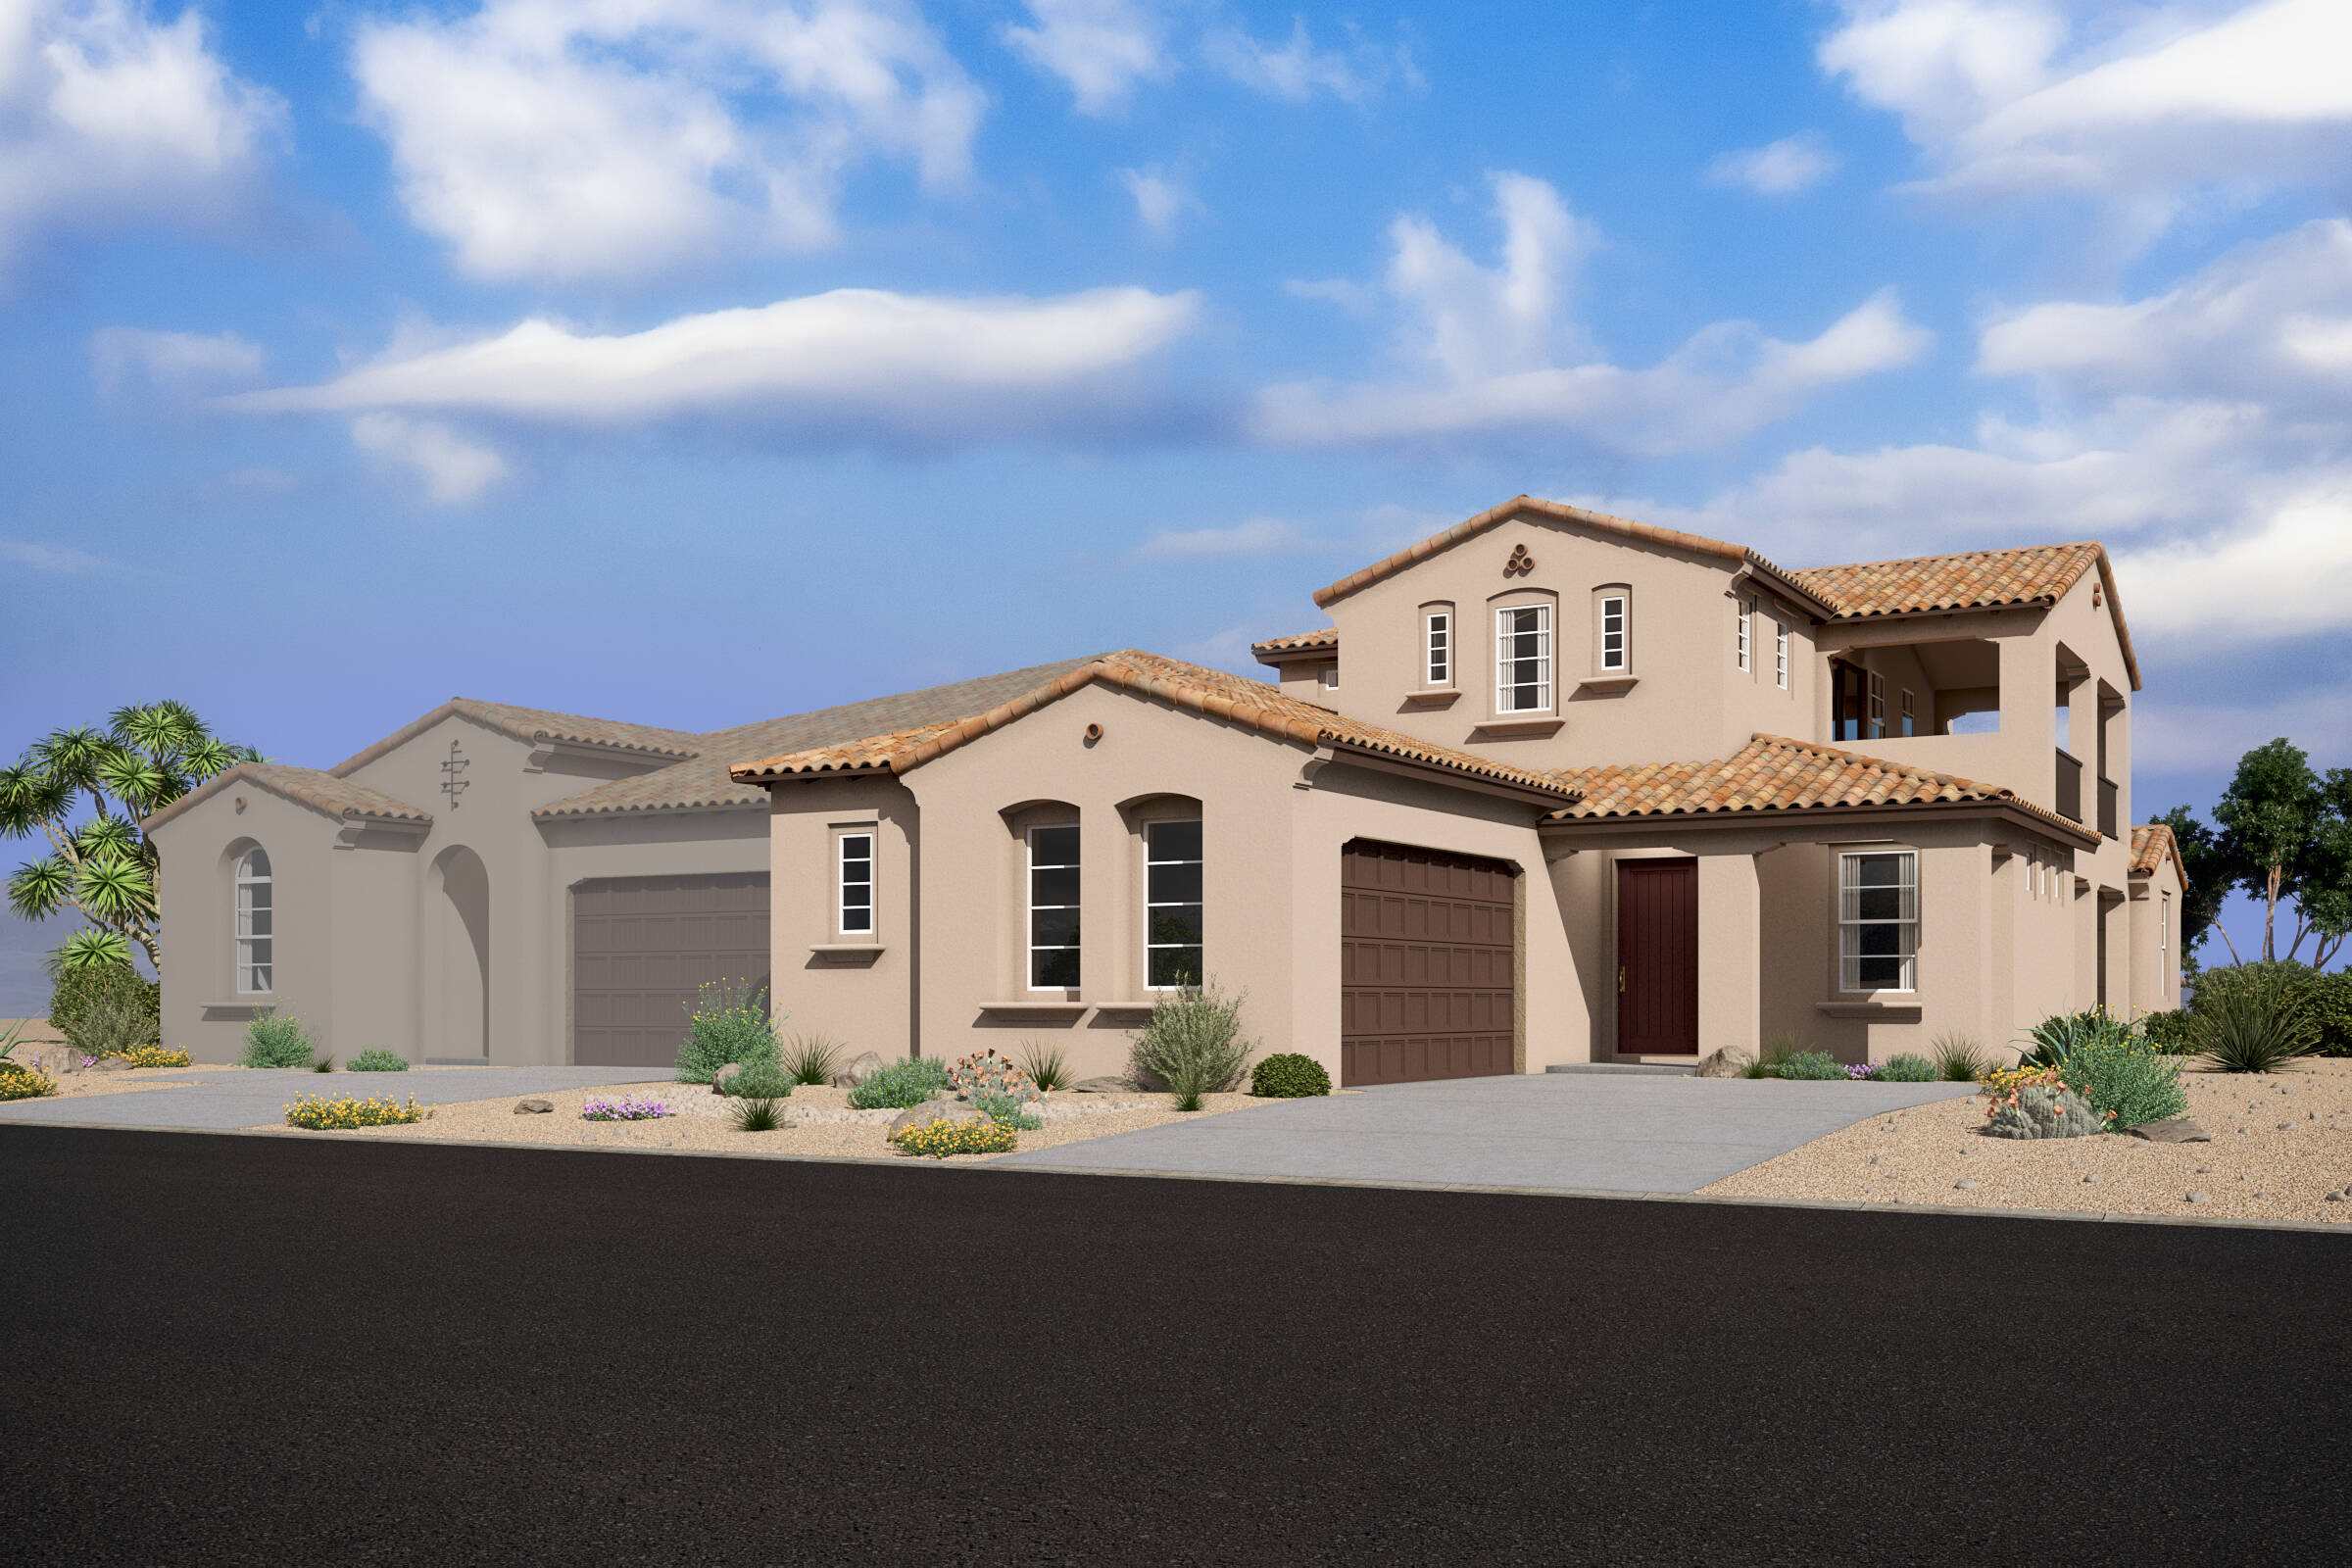 crest spanish colonial d new homes silverstone with capstone